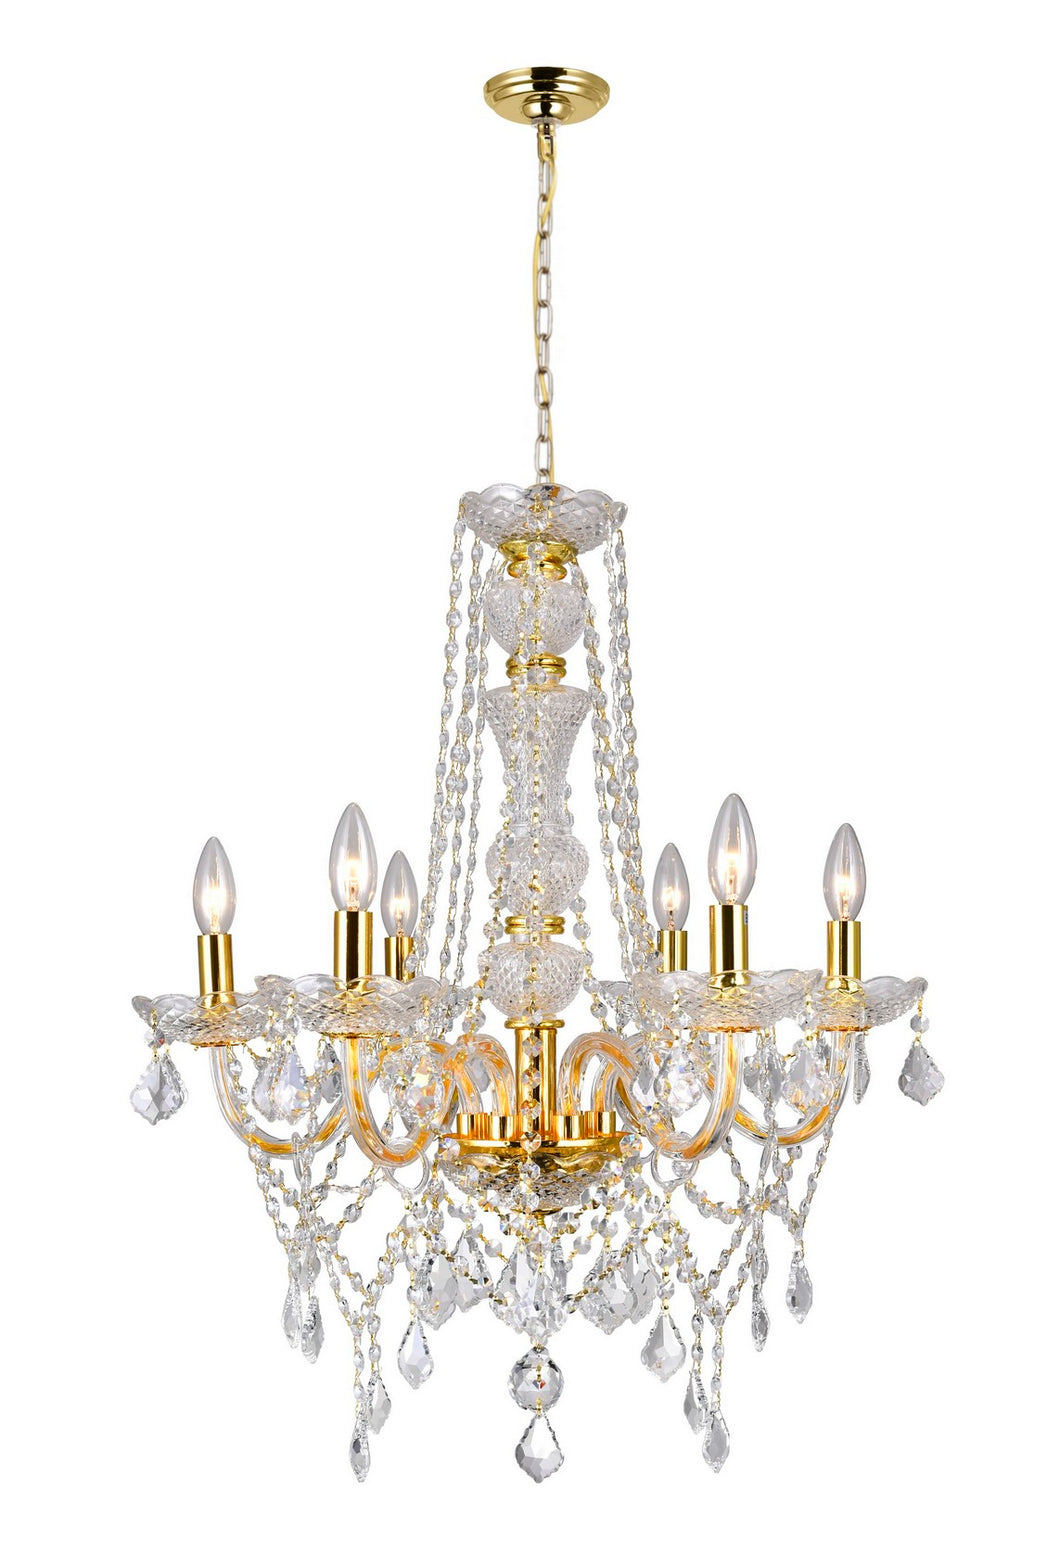 6 LIGHT DOWN CHANDELIER WITH GOLD FINISH - Dream art Gallery